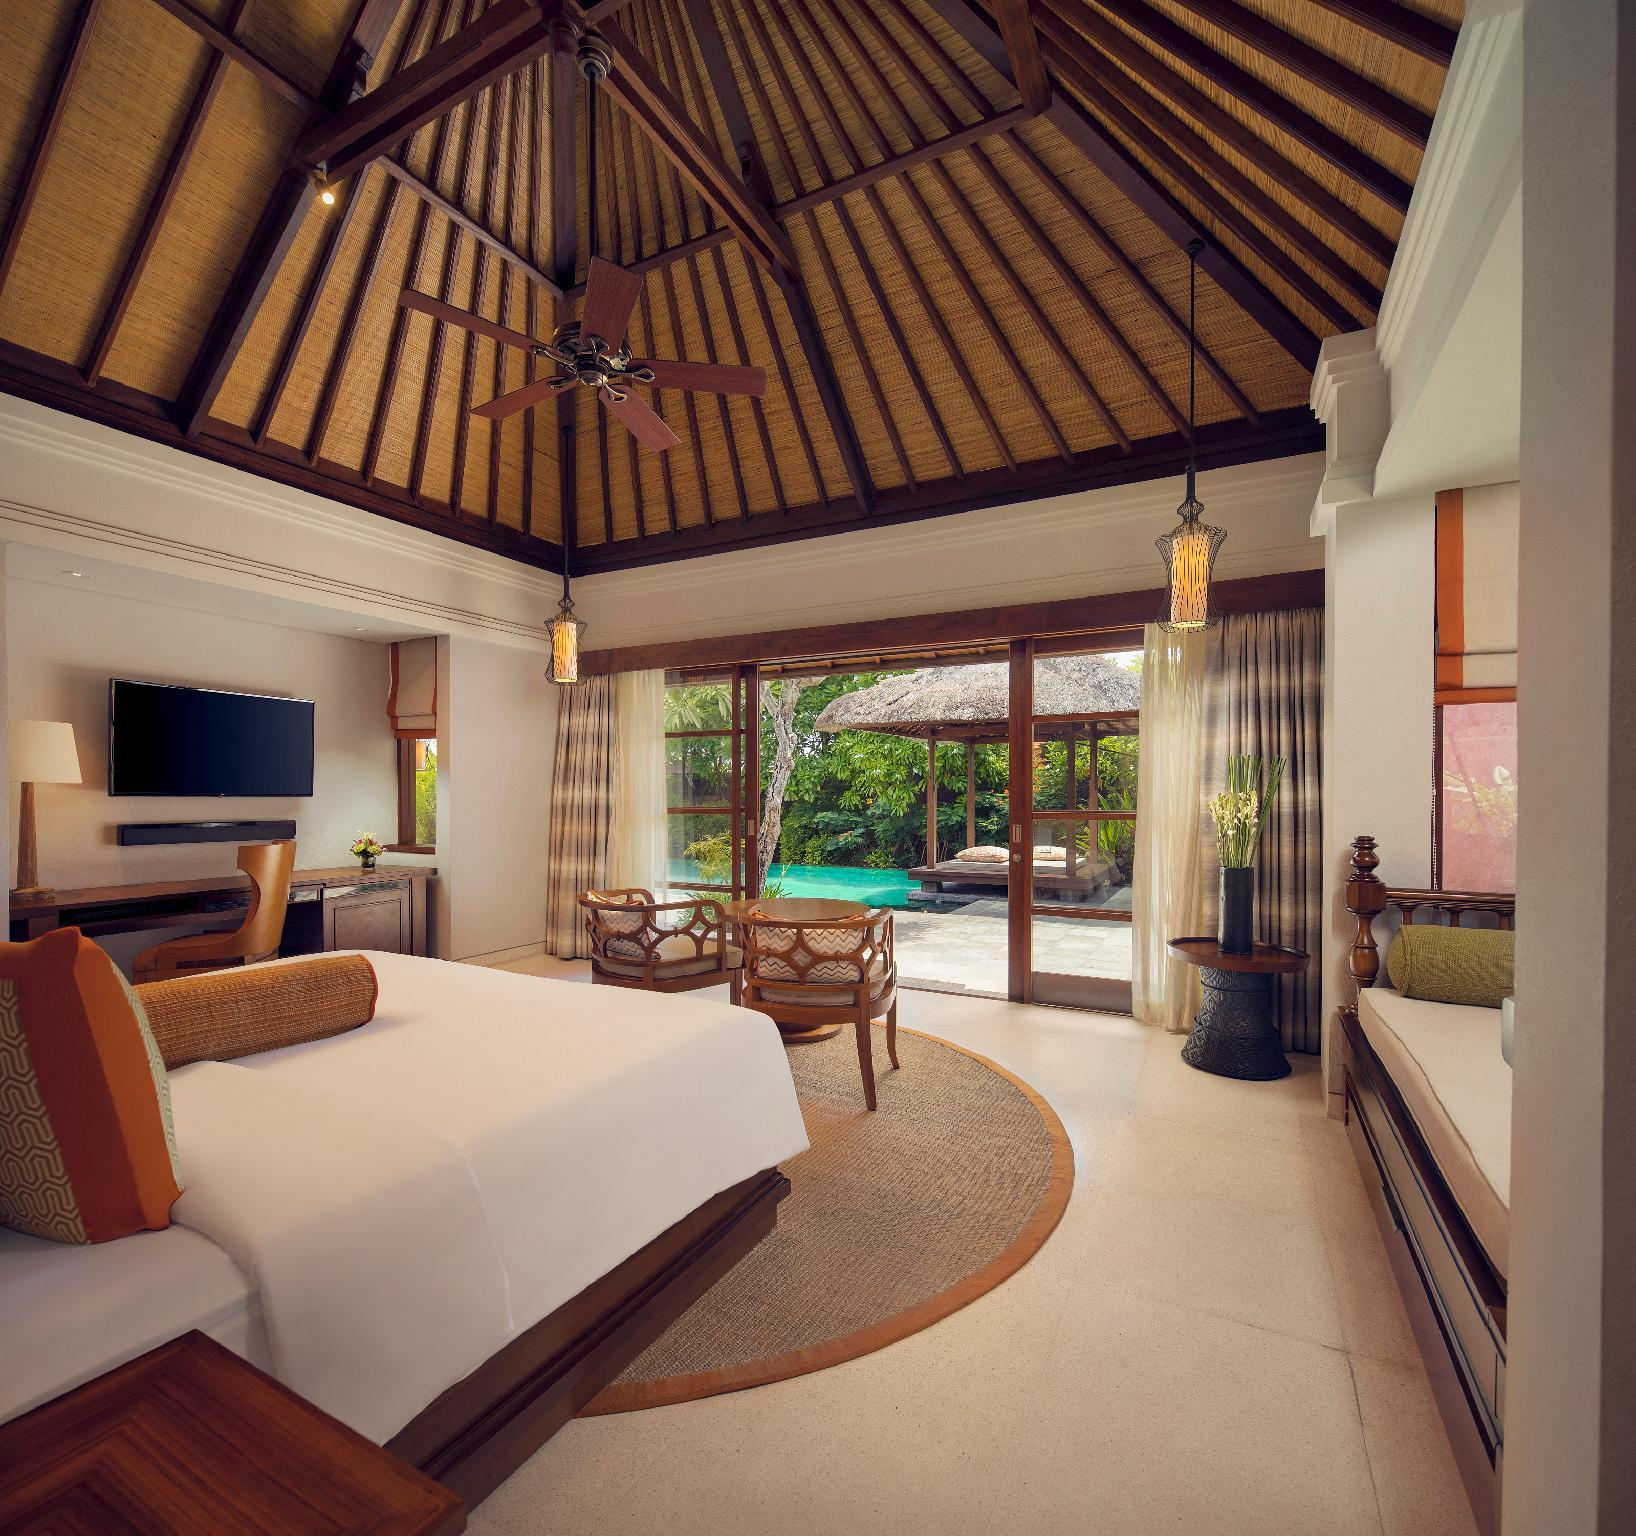 Hilton Bali Resort in Indonesia - Room Deals, Photos & Reviews